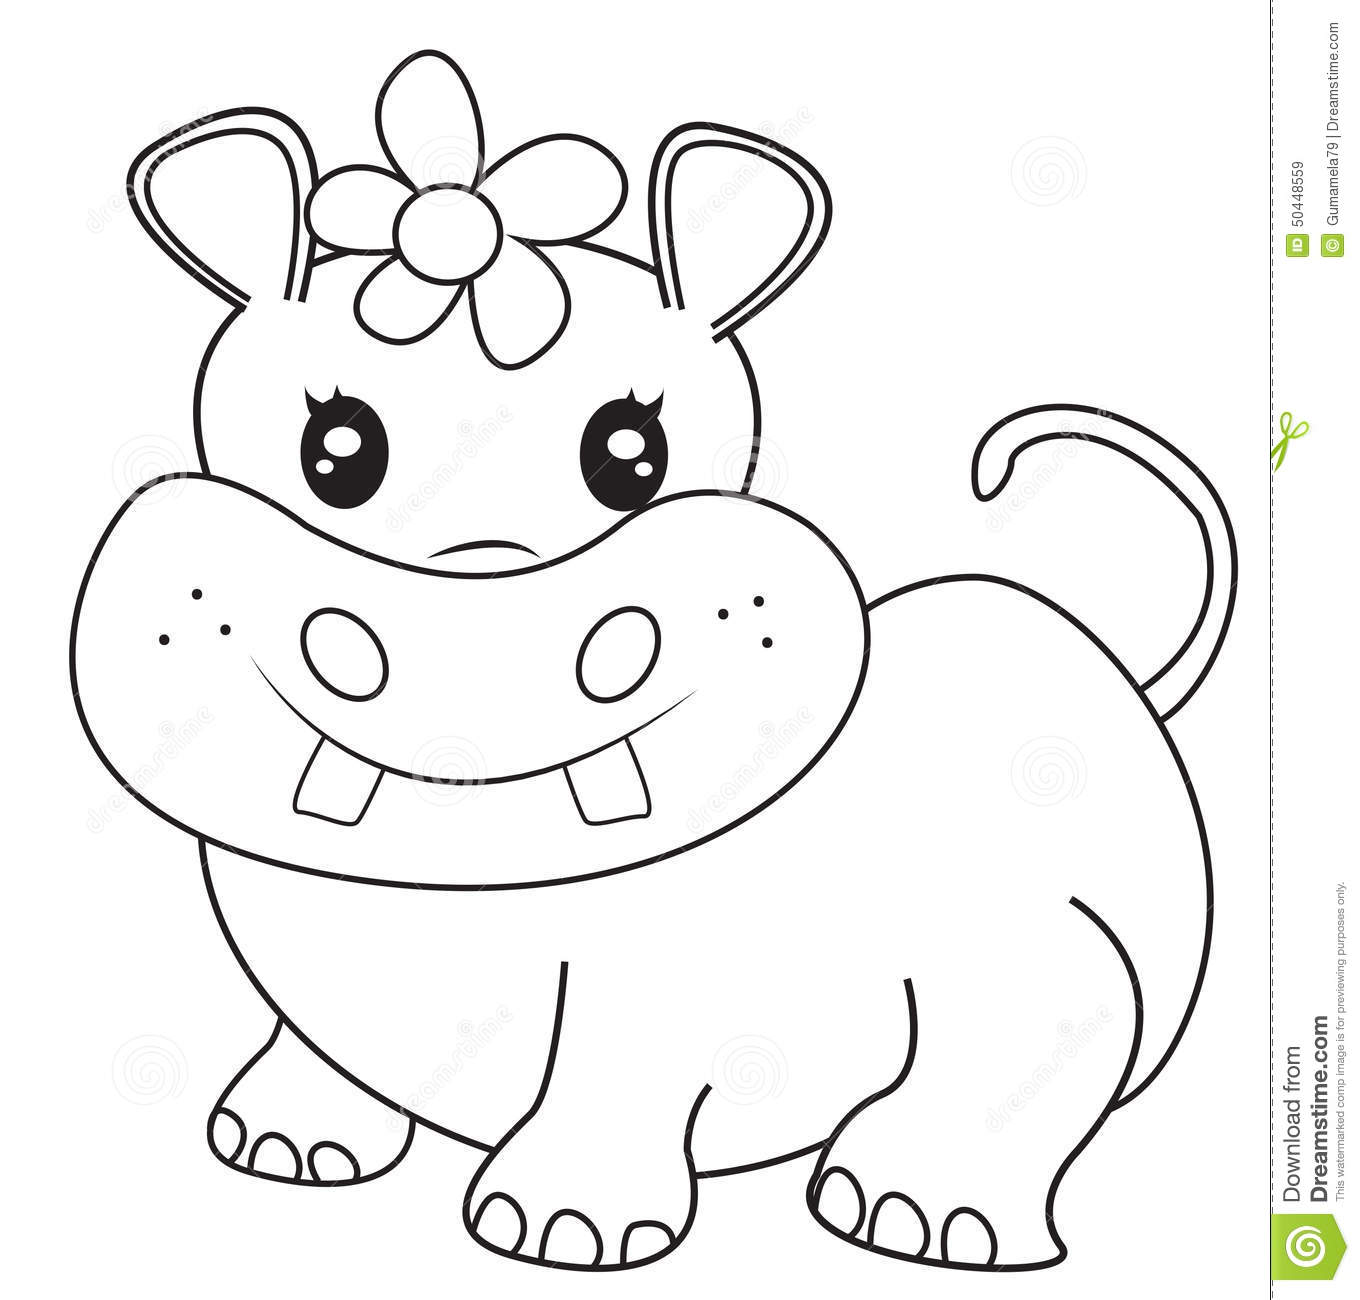 Hippo coloring pages for kids sketch coloring page for Baby hippo coloring pages